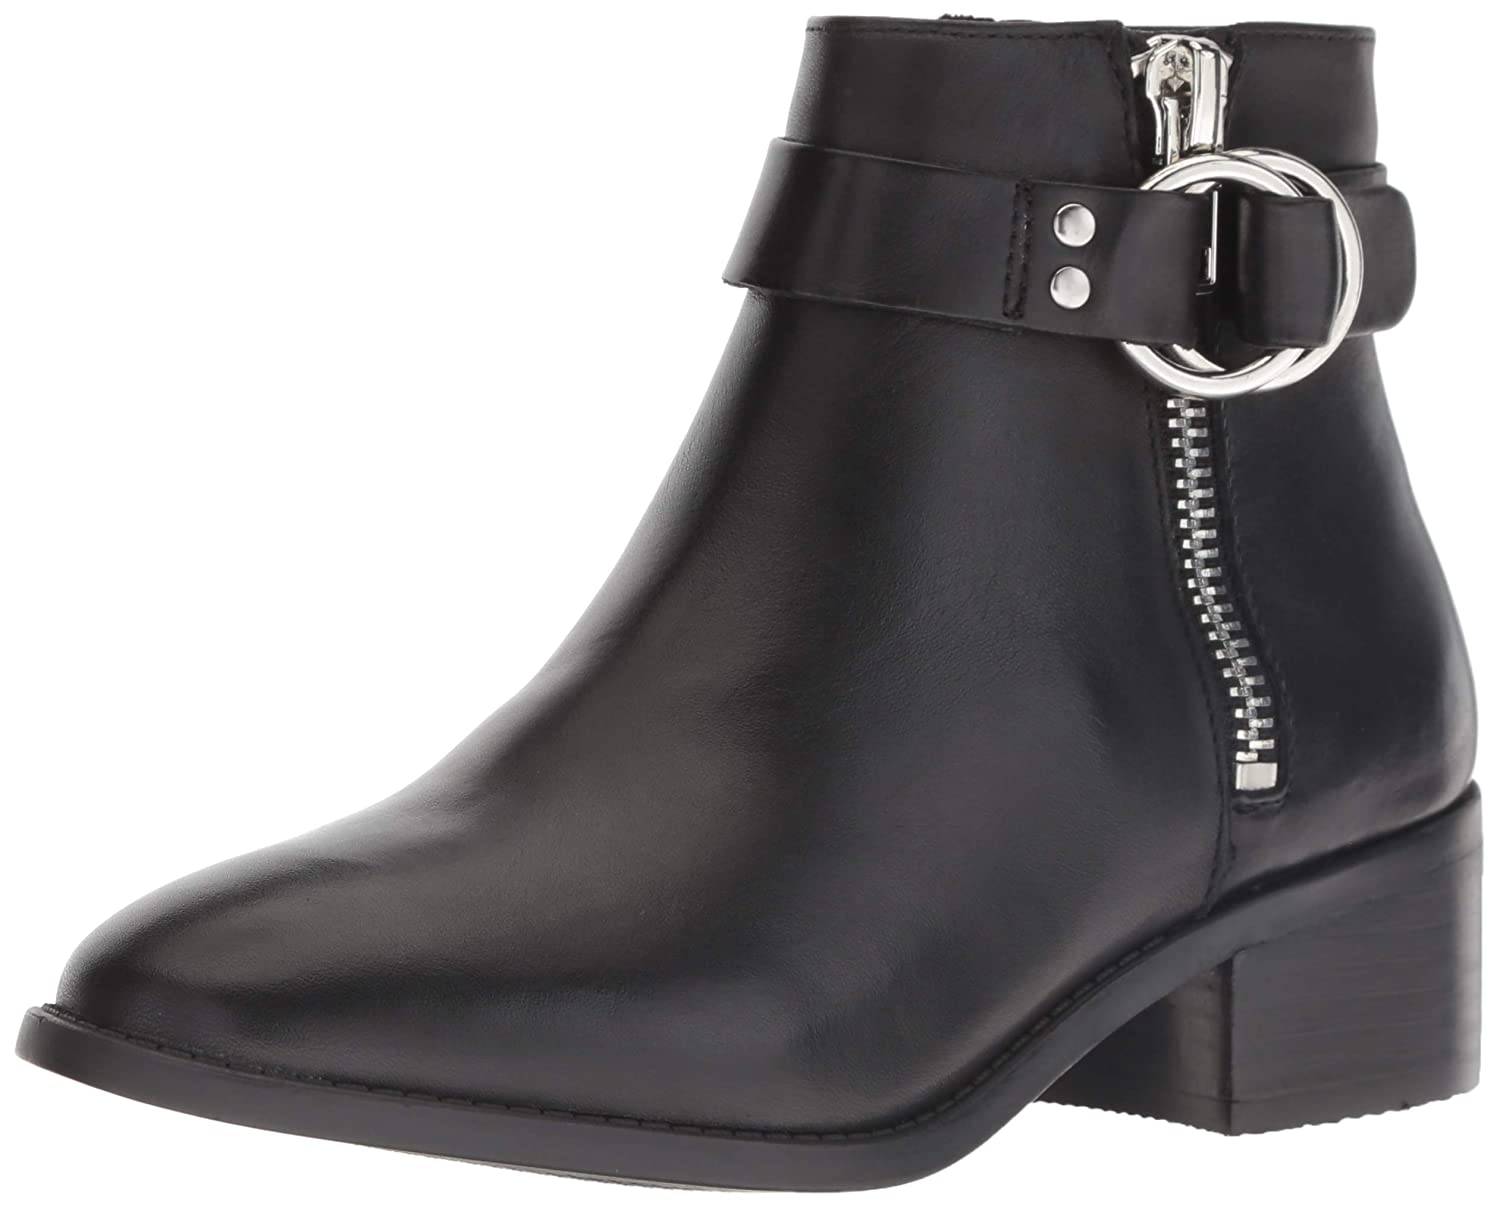 36df5239bf4 Steve Madden Women's Deja Ankle Boot: Buy Online at Low Prices in ...